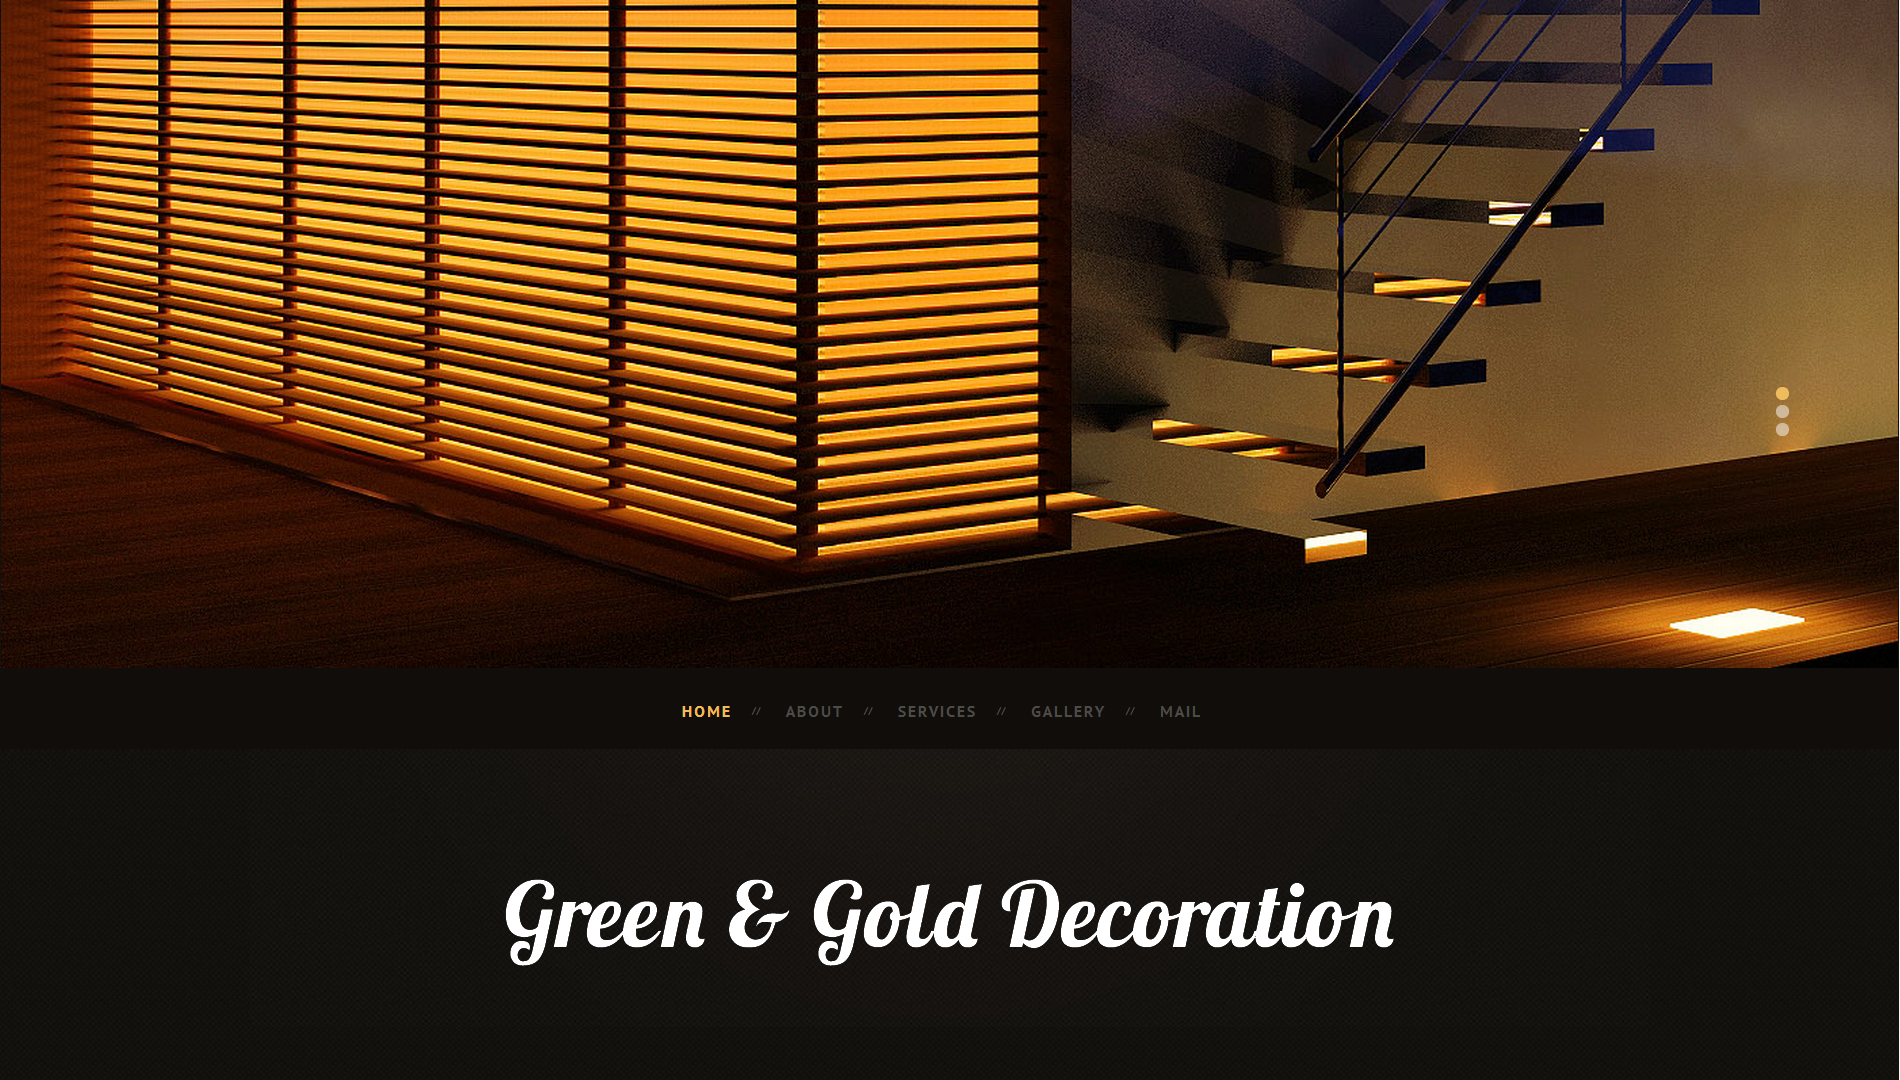 Green and Gold Decoration